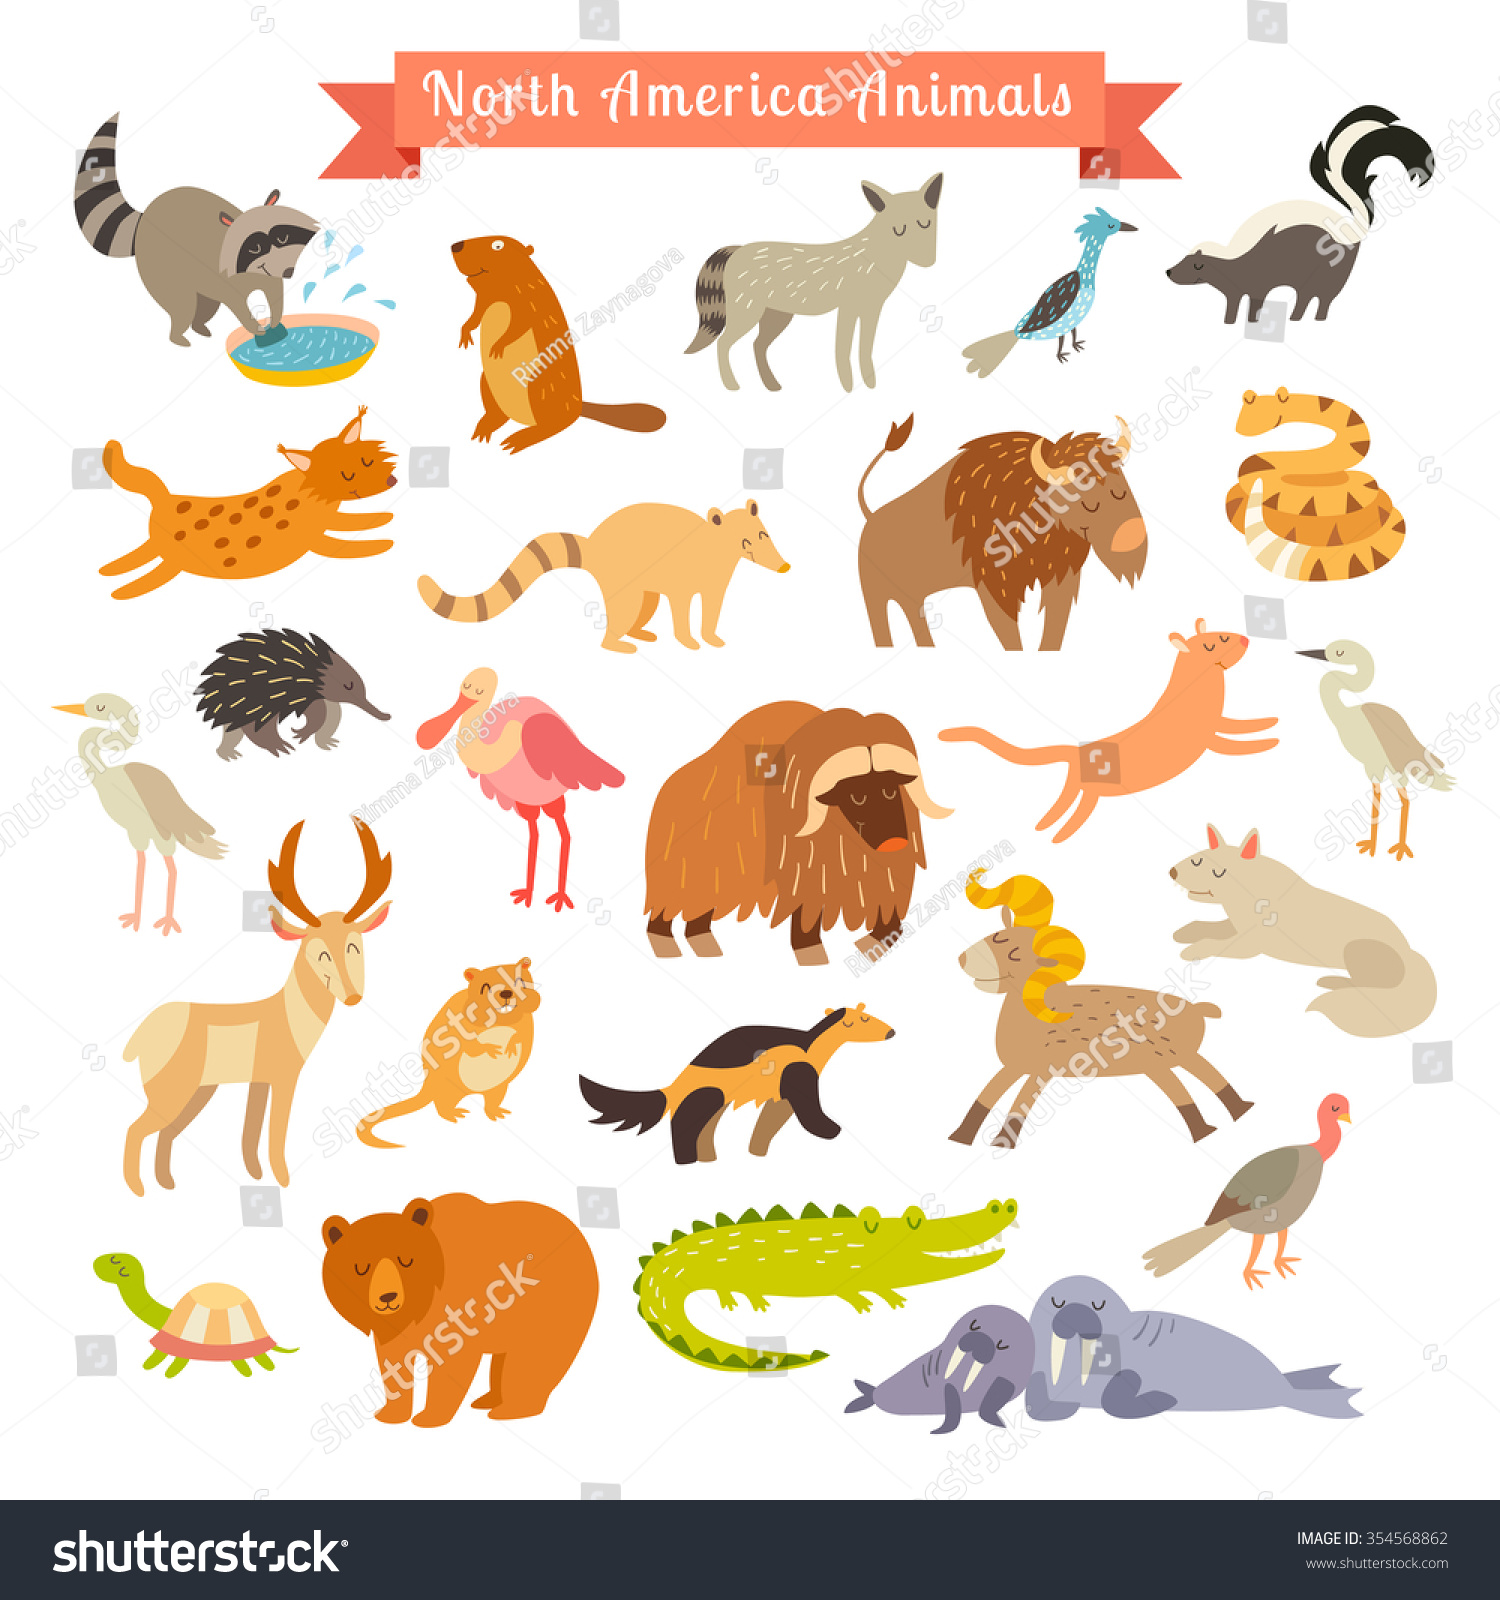 North America Animals Vector Illustration North America